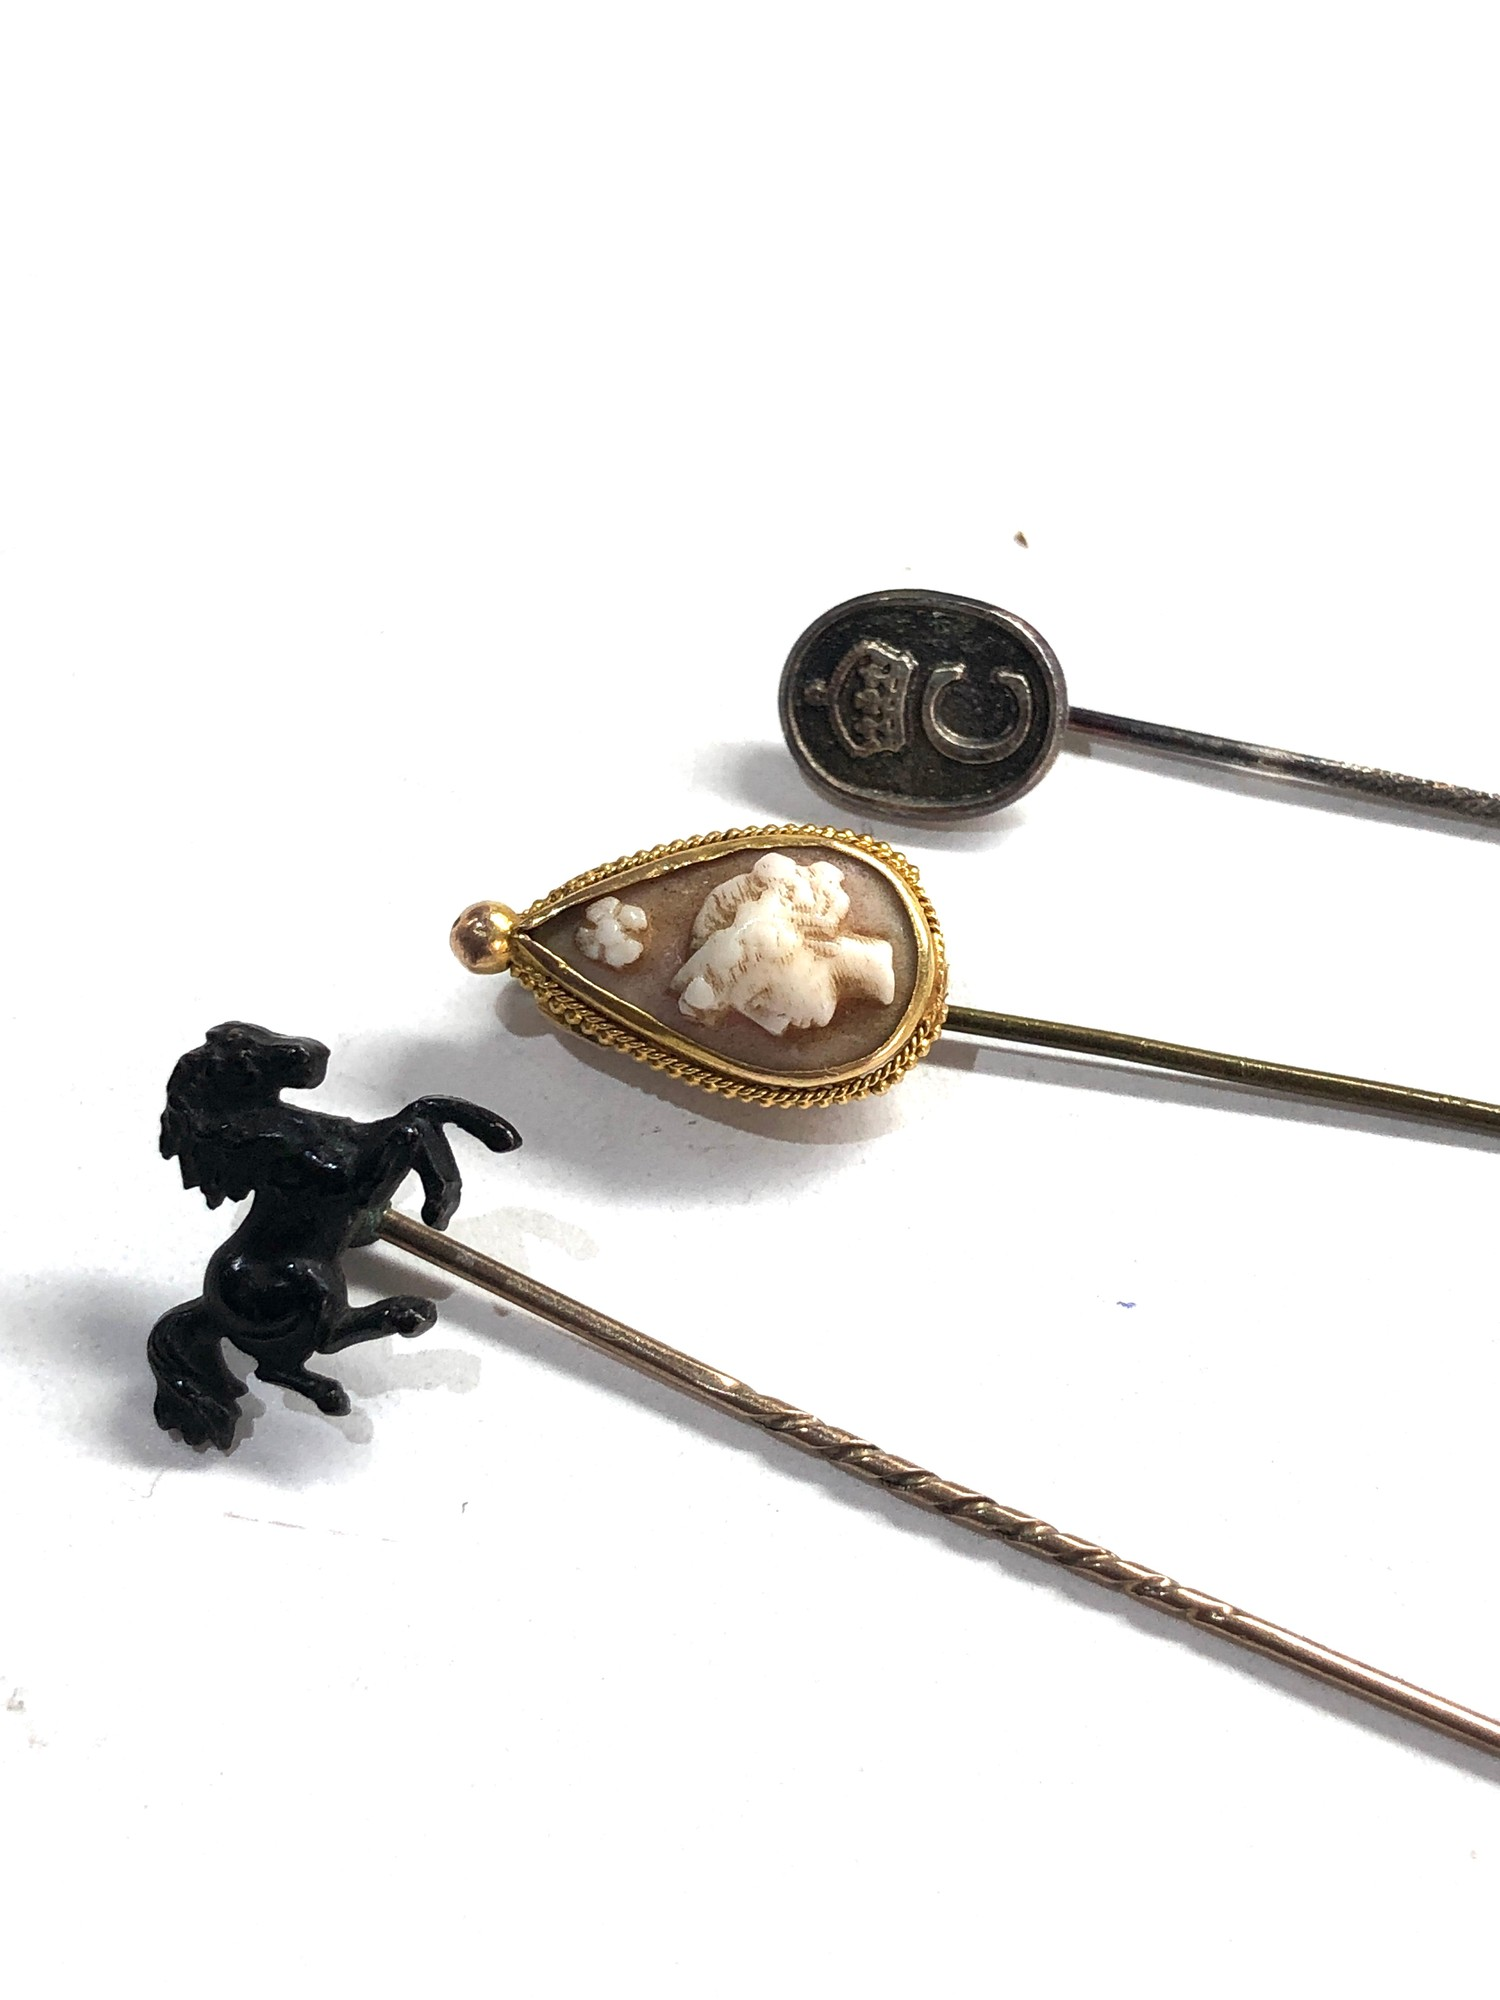 selection of misc jewellery items etc includes hat pins gold & pearl earrings and 14ct gold georg - Image 2 of 5